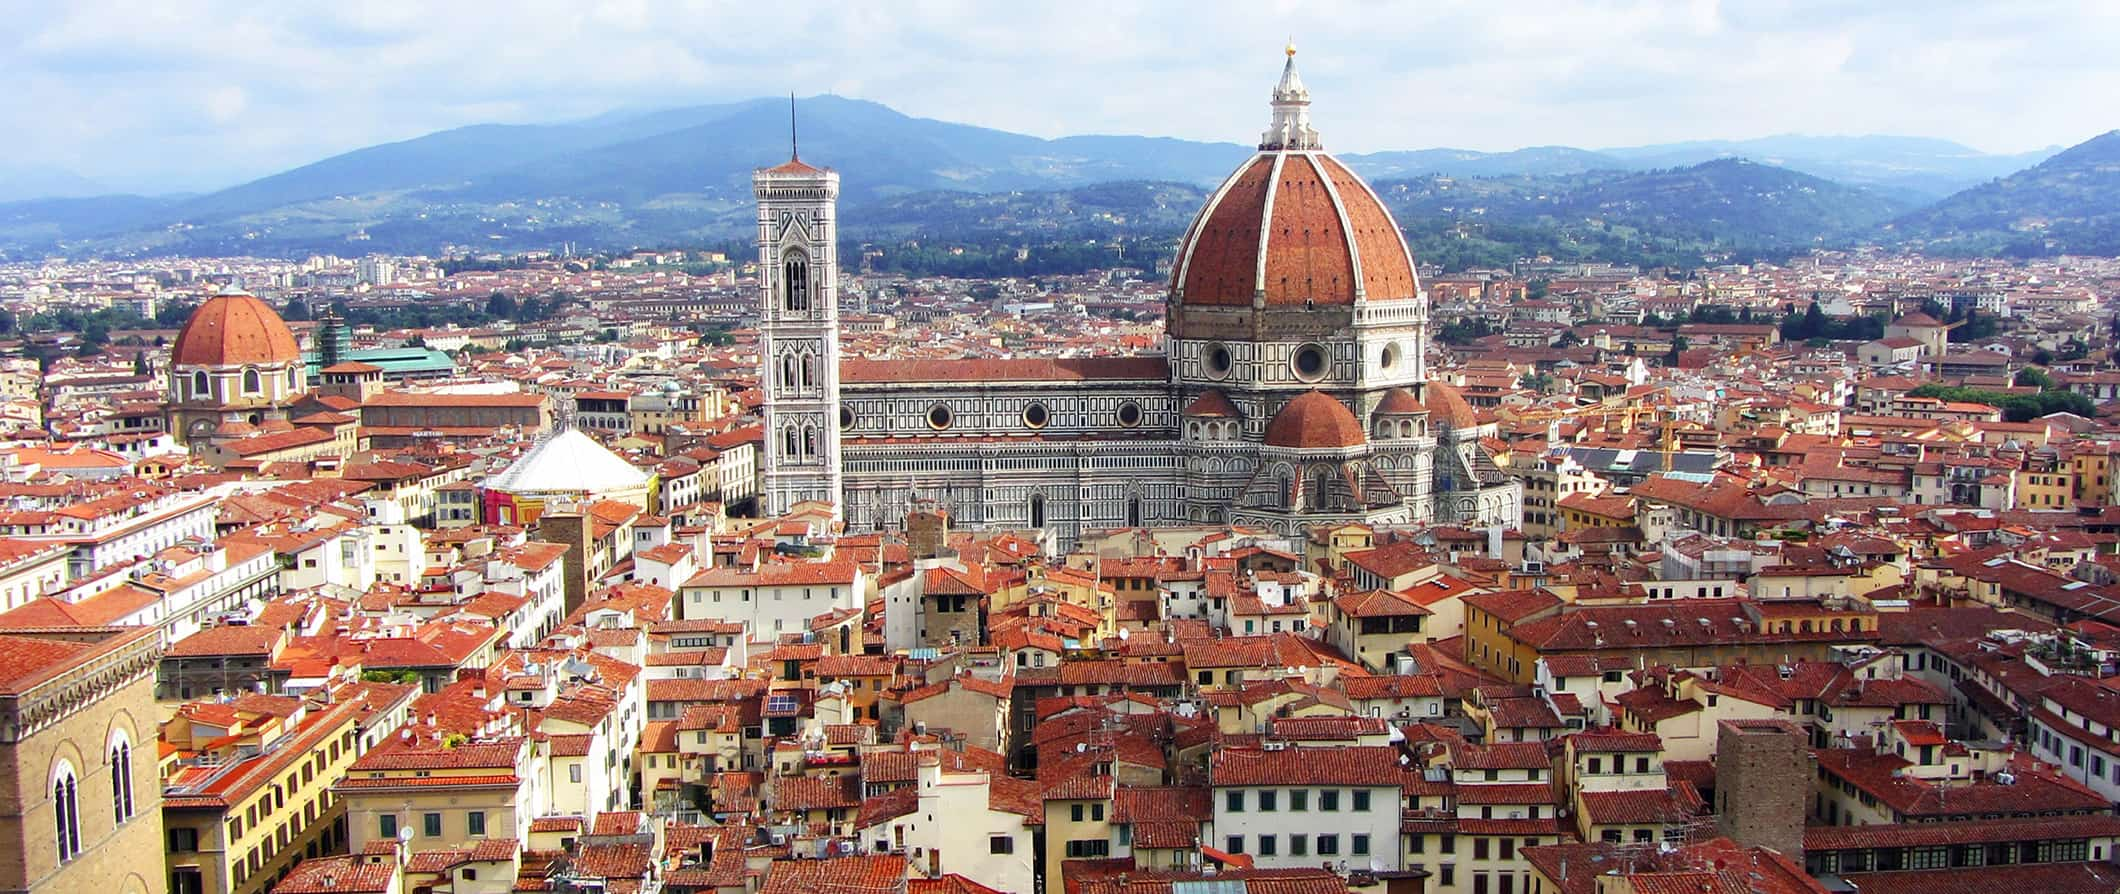 guided tours of italy for seniors